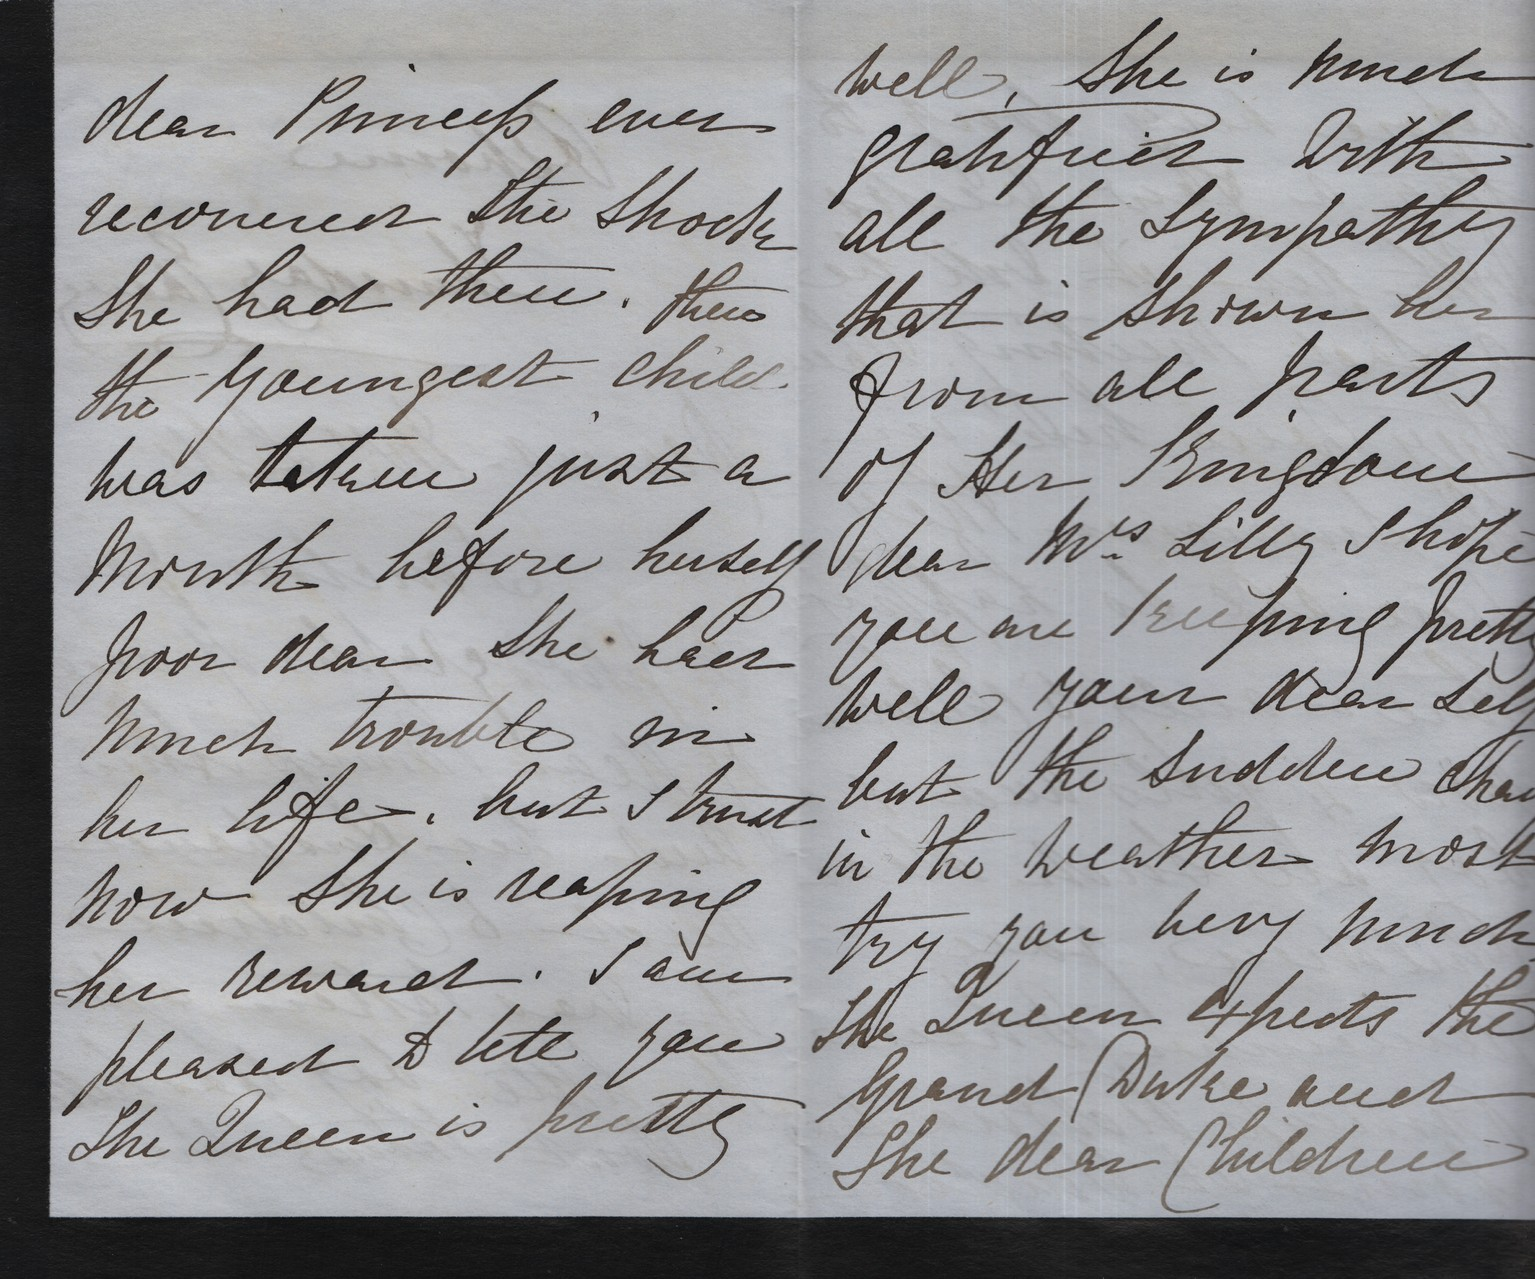 1875 Annie MacDonald to MDL